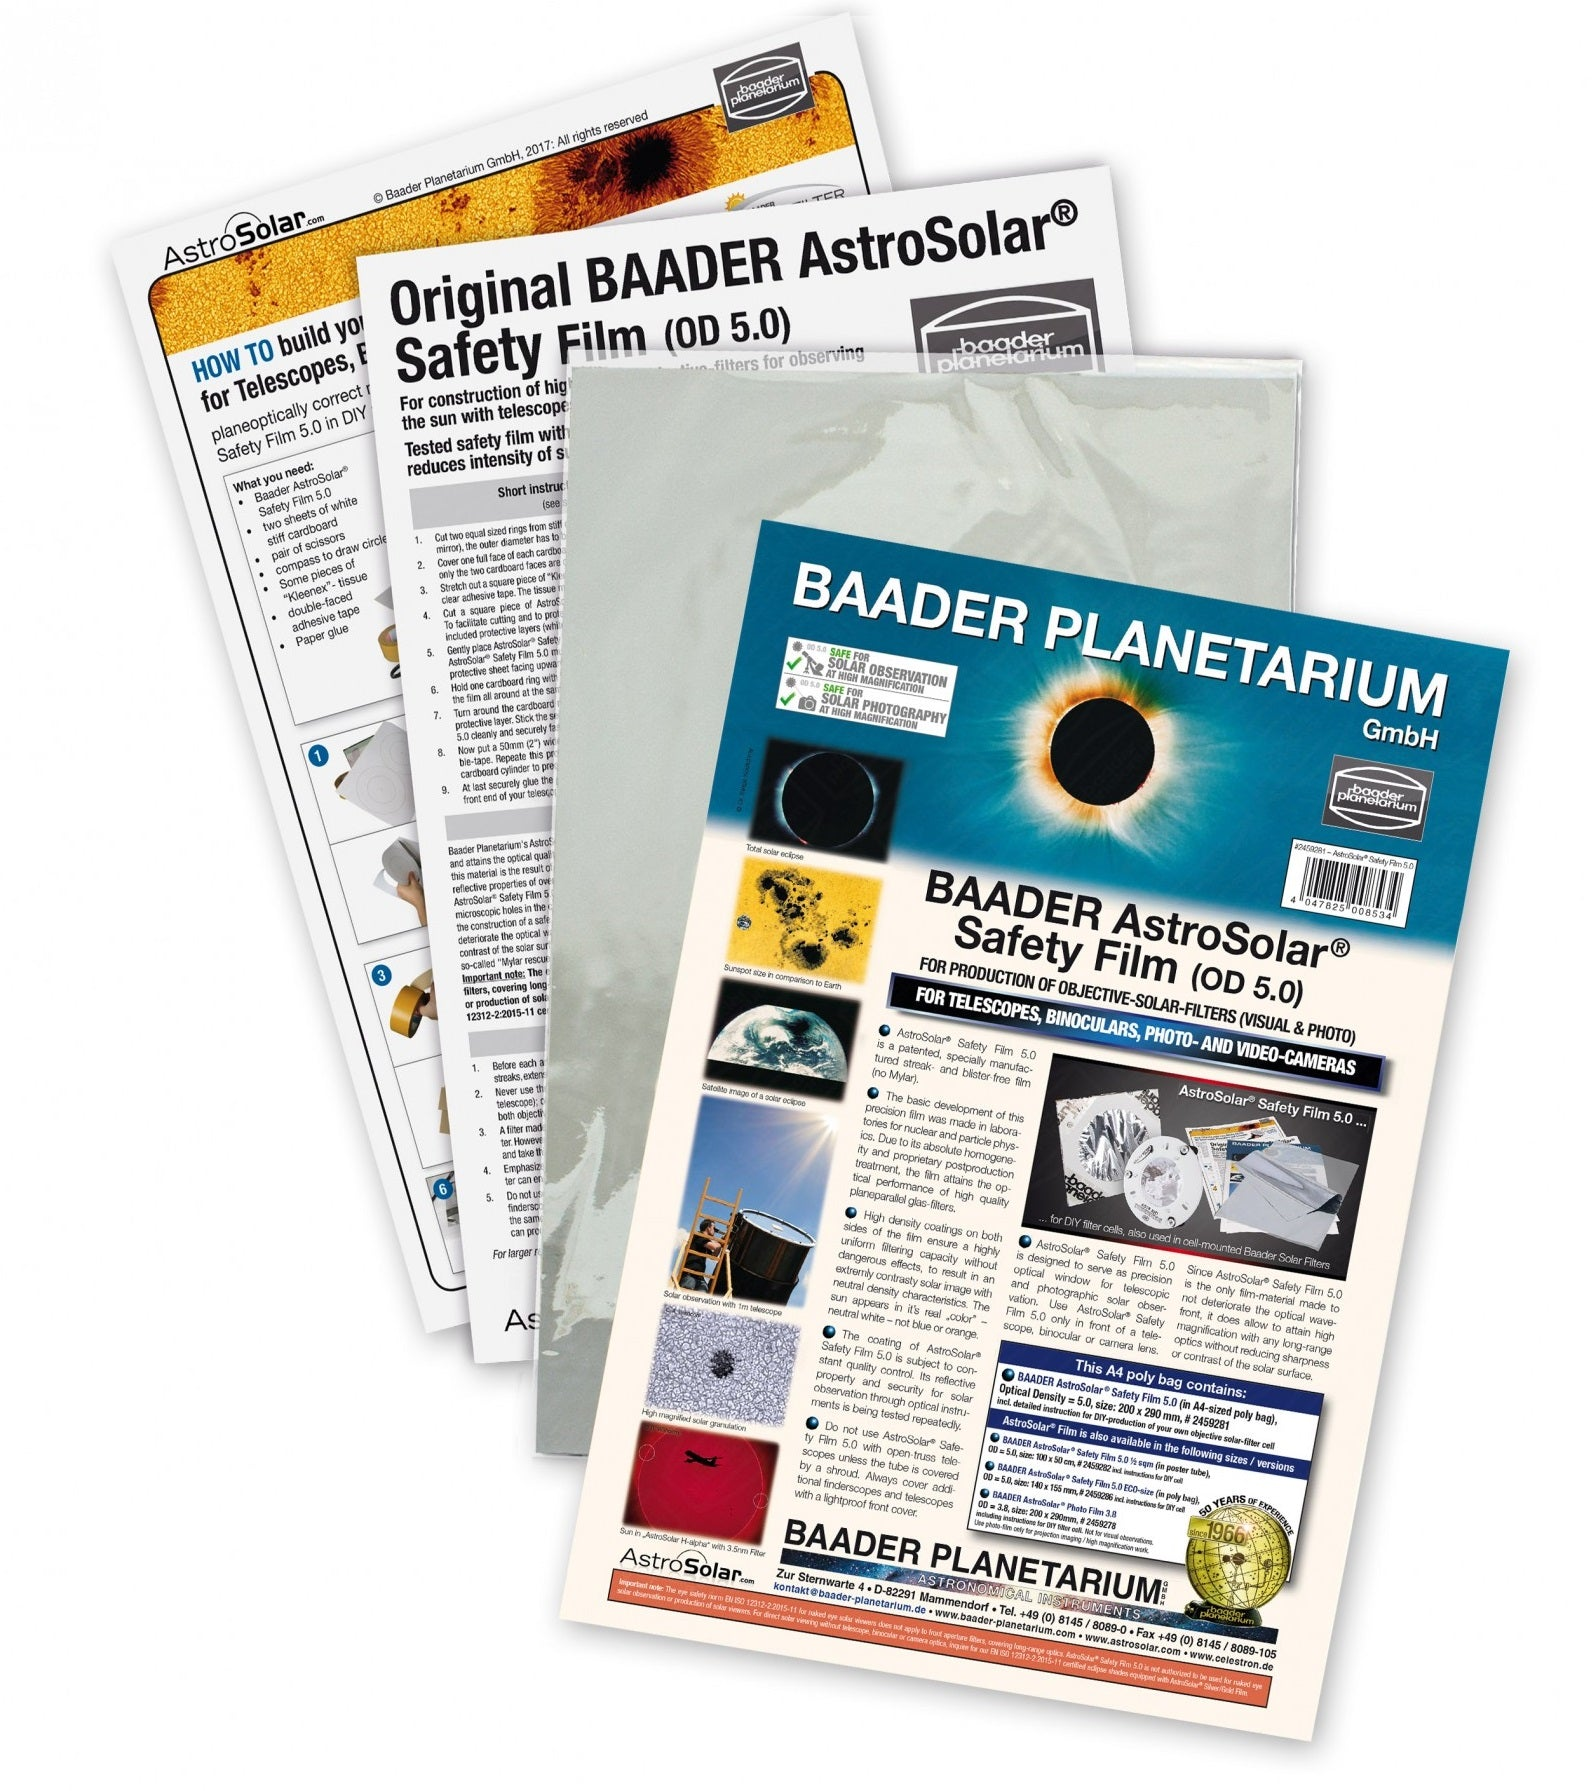 Baader AstroSolar® Safety Film 5.0, 20x29cm